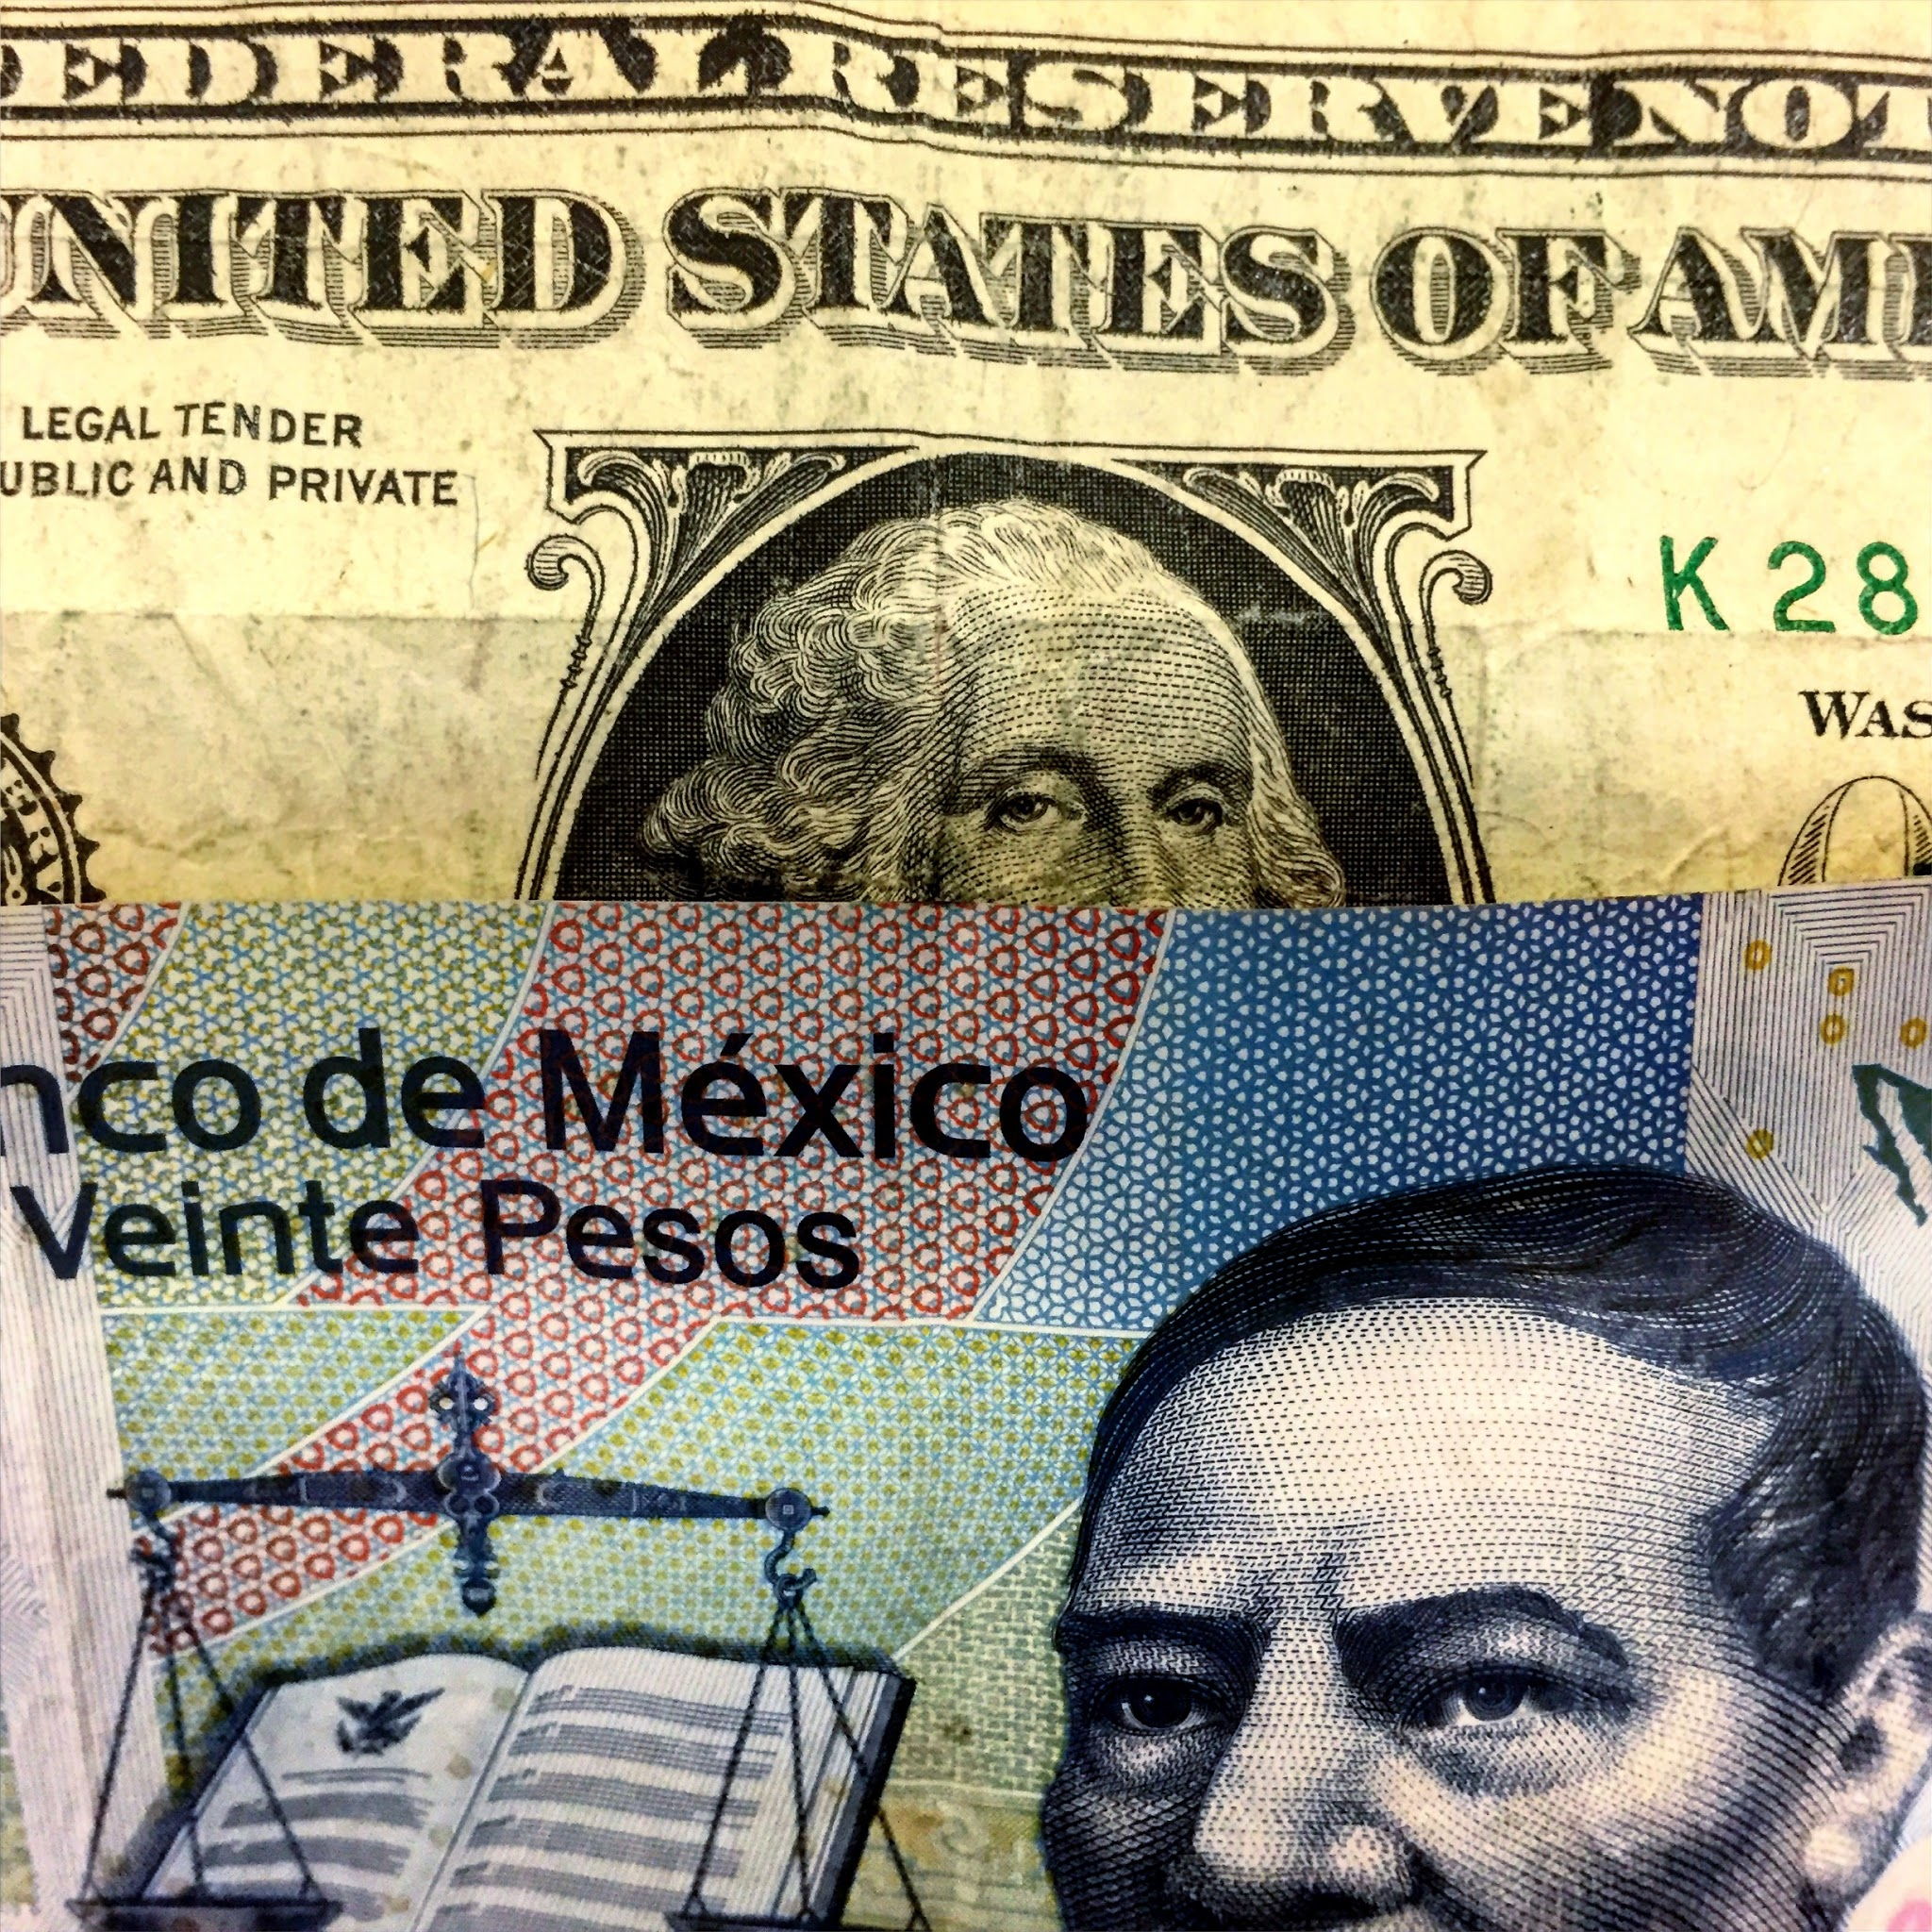 Mexican Peso Gains Strength After Elections And U.S. Economy | Fronteras